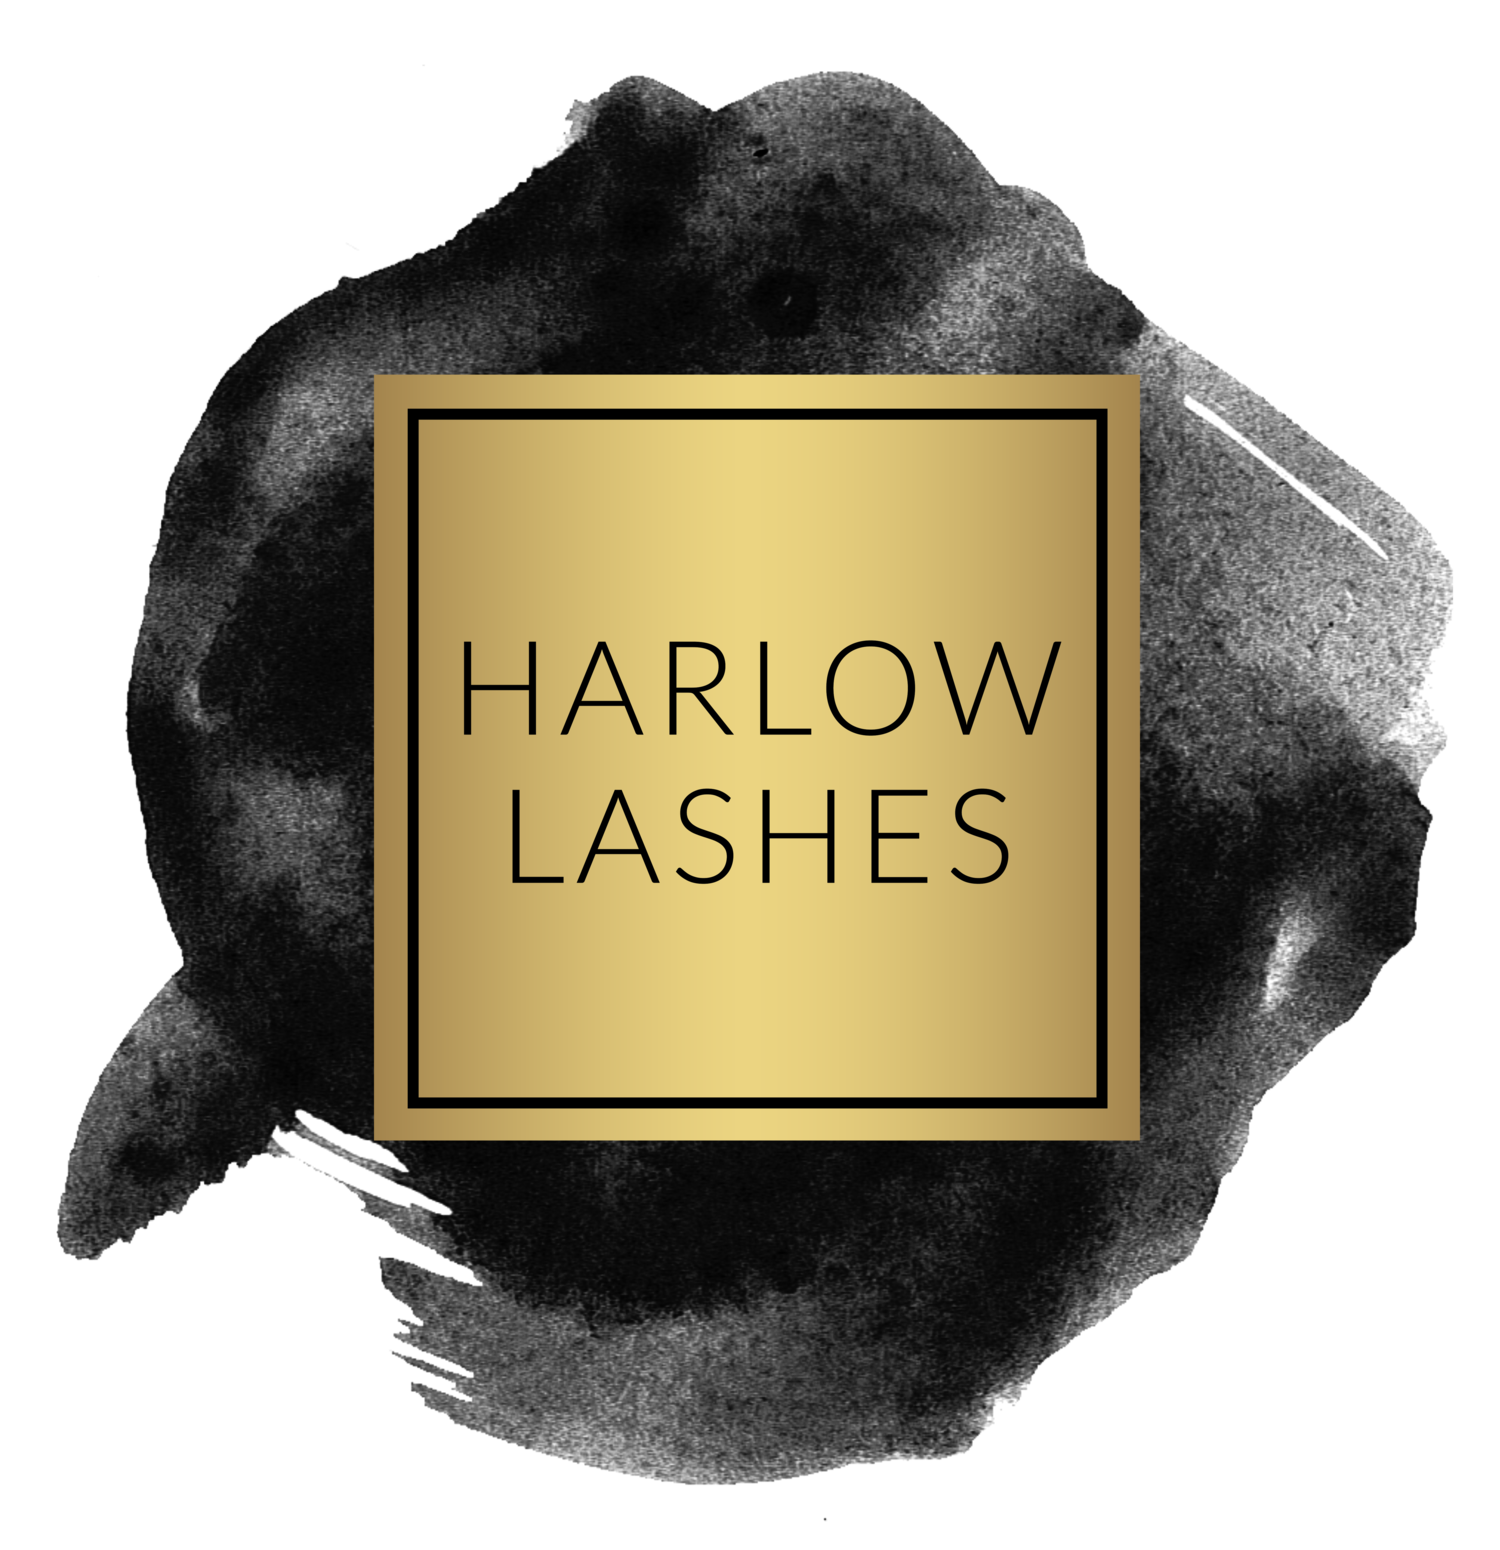 Harlow Lashes